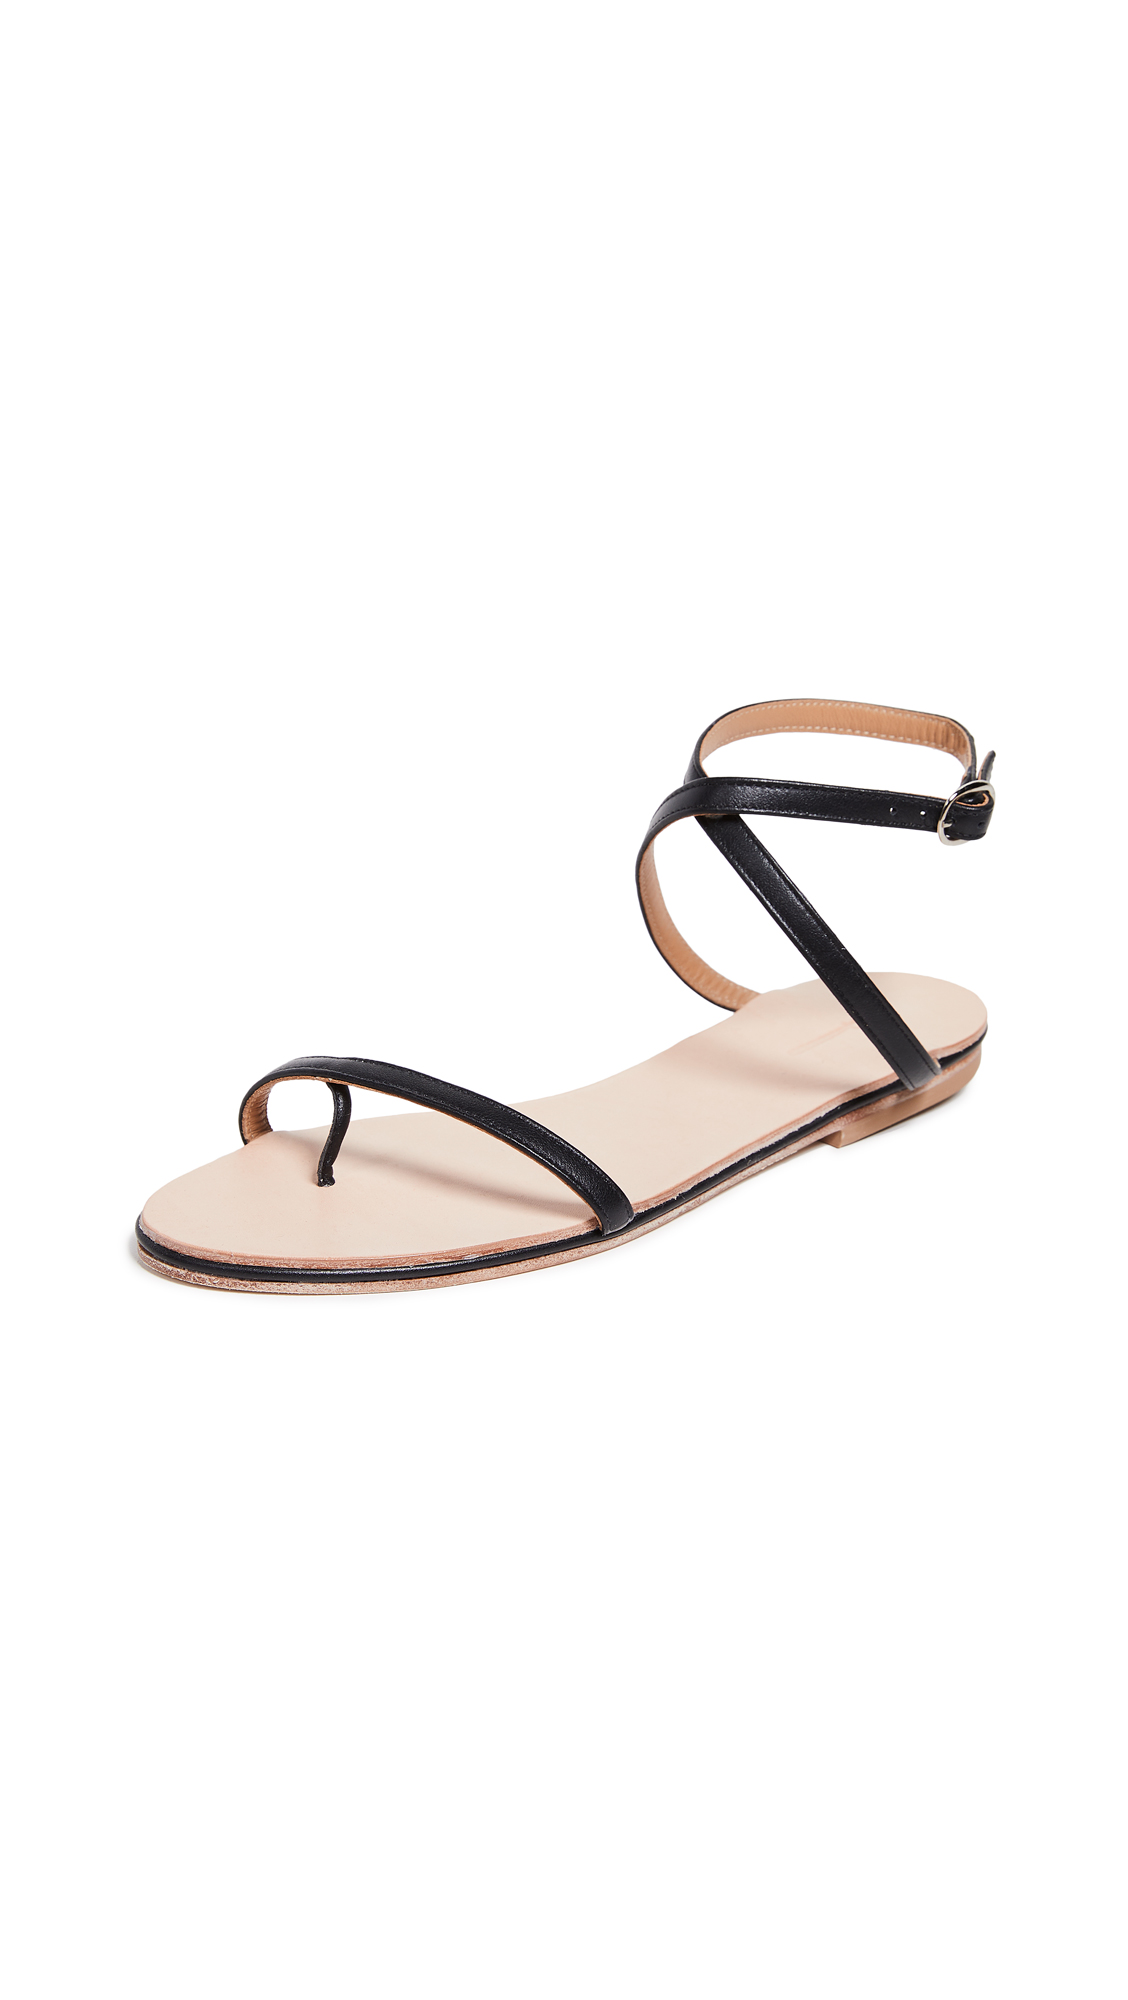 THE PALATINES Calide X Strap Sandals in Black/Natural